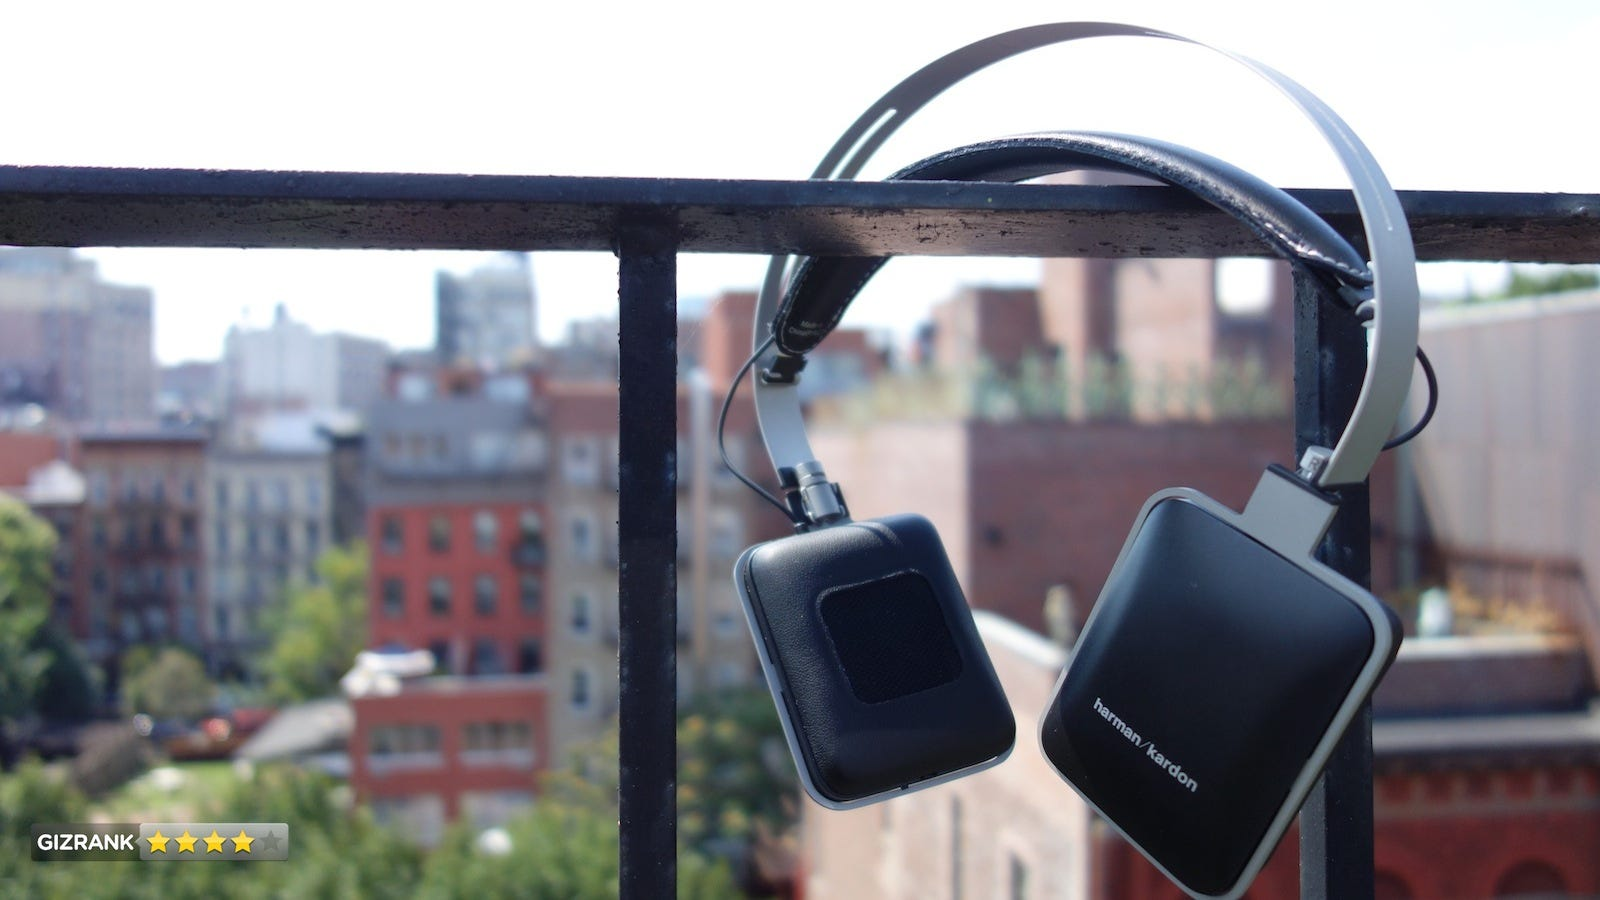 Harman Kardon CL Review: These Headphones Can Handle All Your Listening Needs